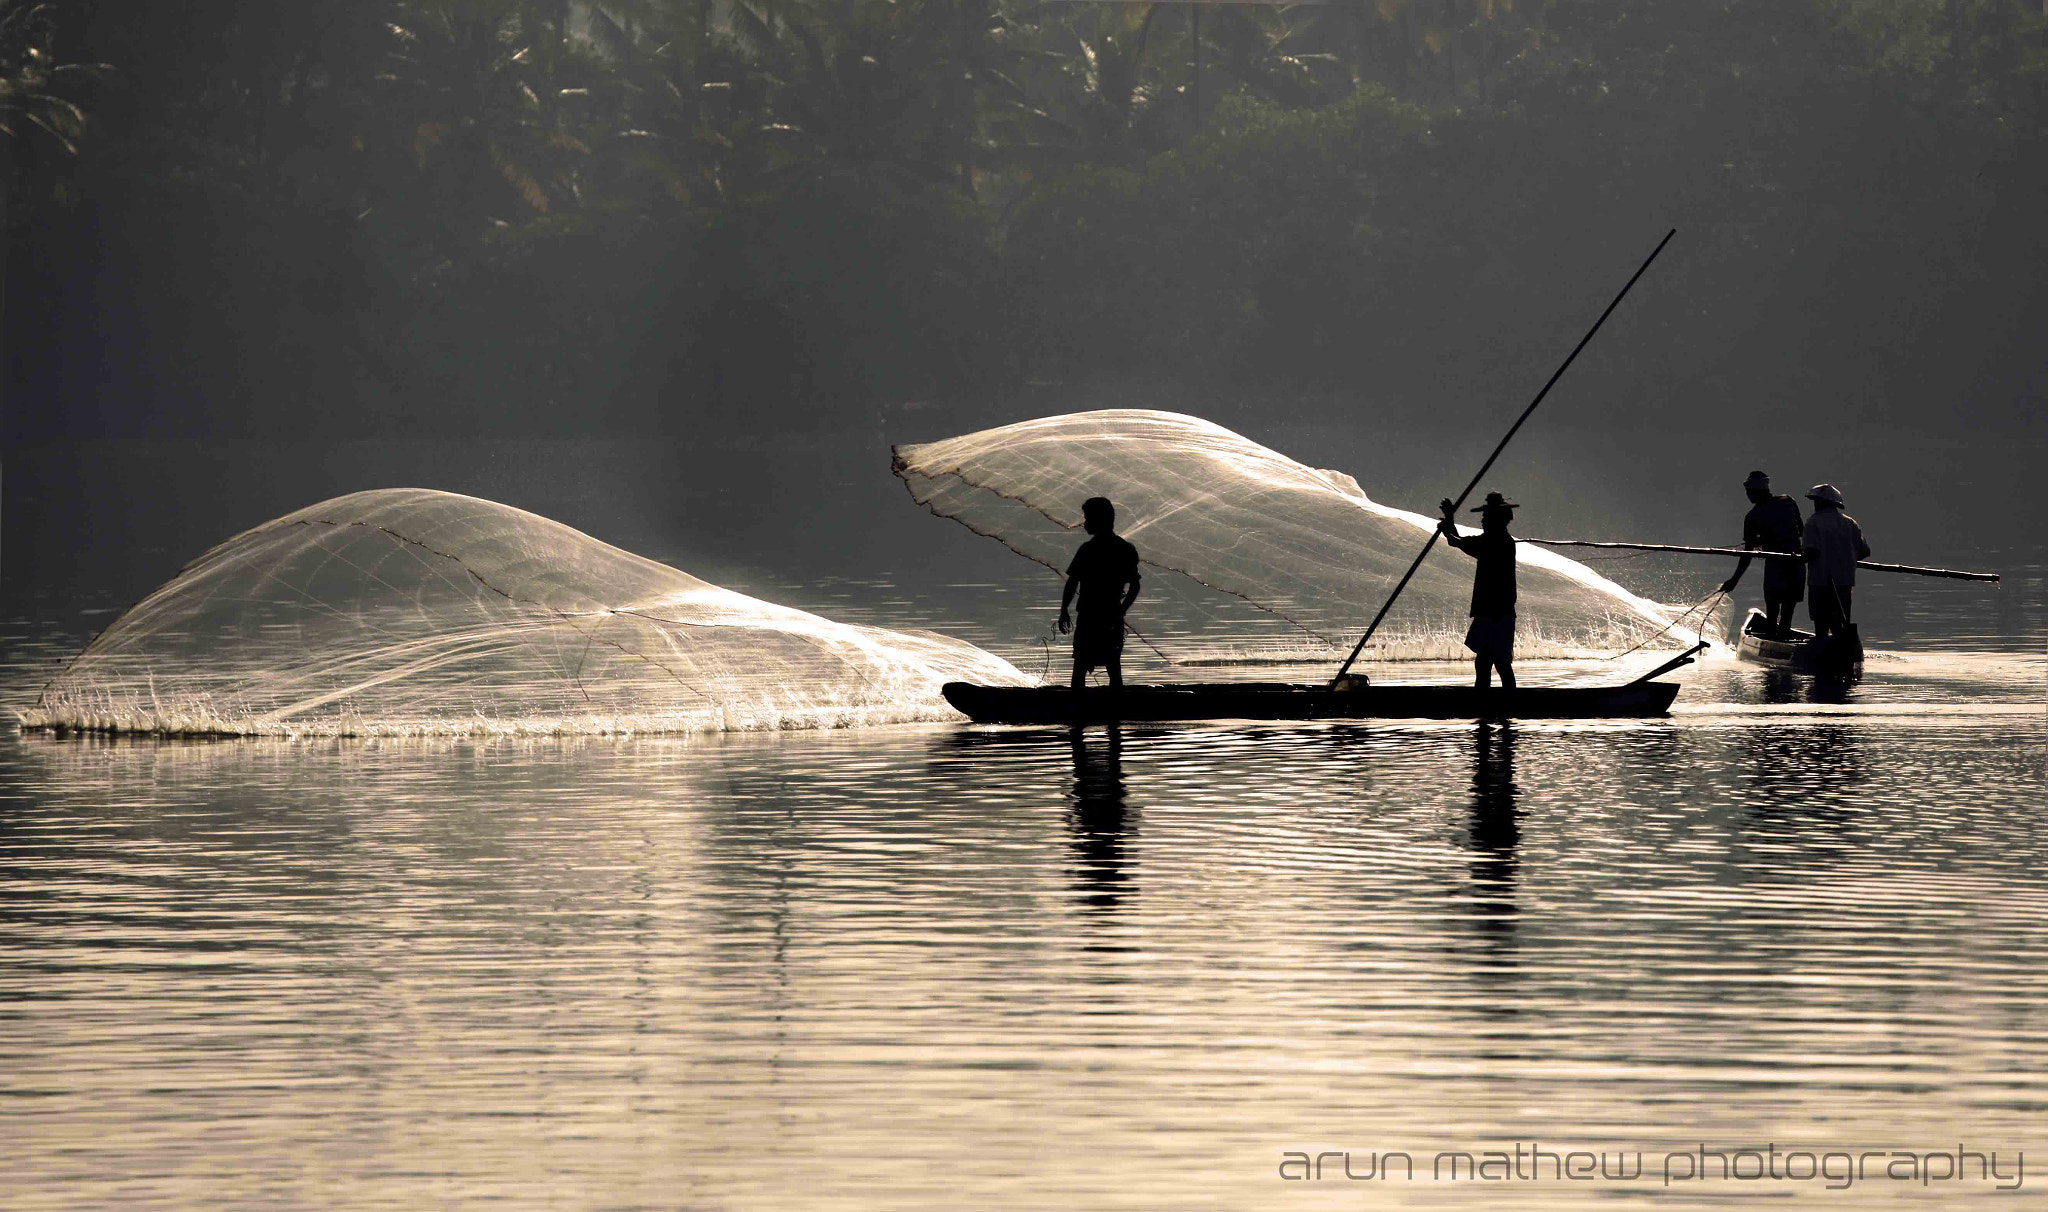 Photograph Fishermen by Arun Mathew on 500px